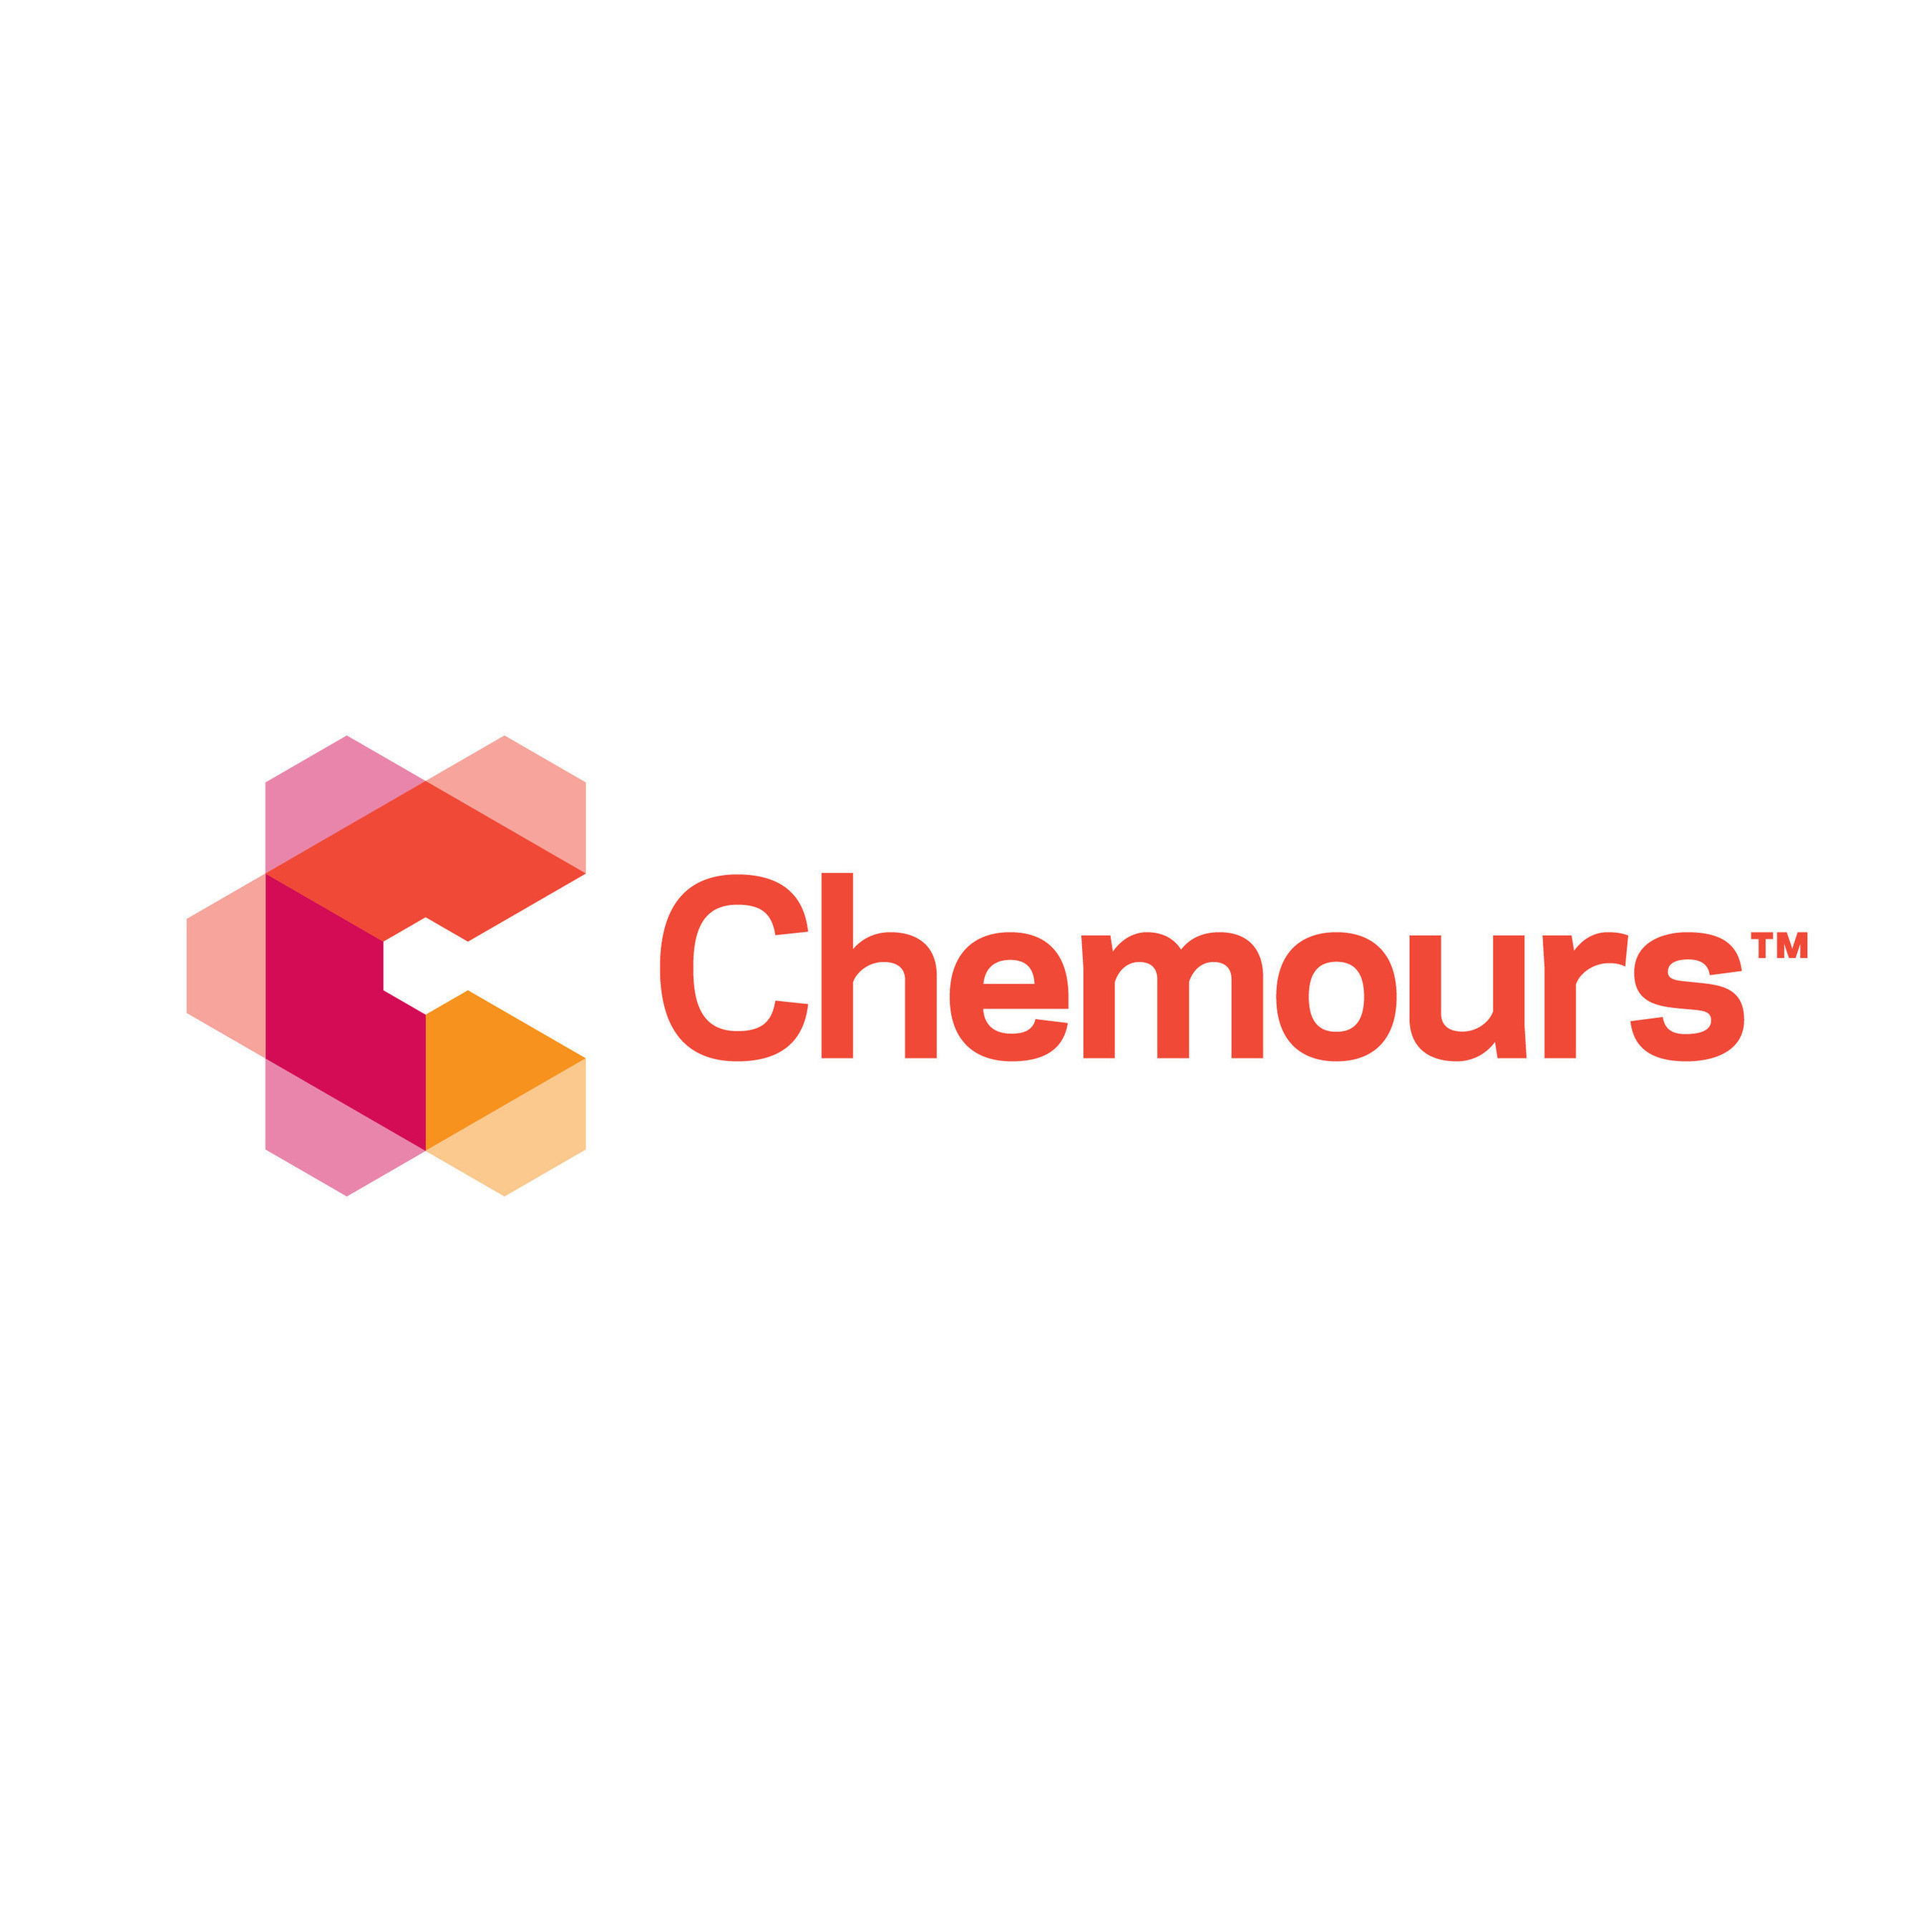 Chemours Announces Strategic Partnership with UET to Address Renewable Energy Storage Challenge